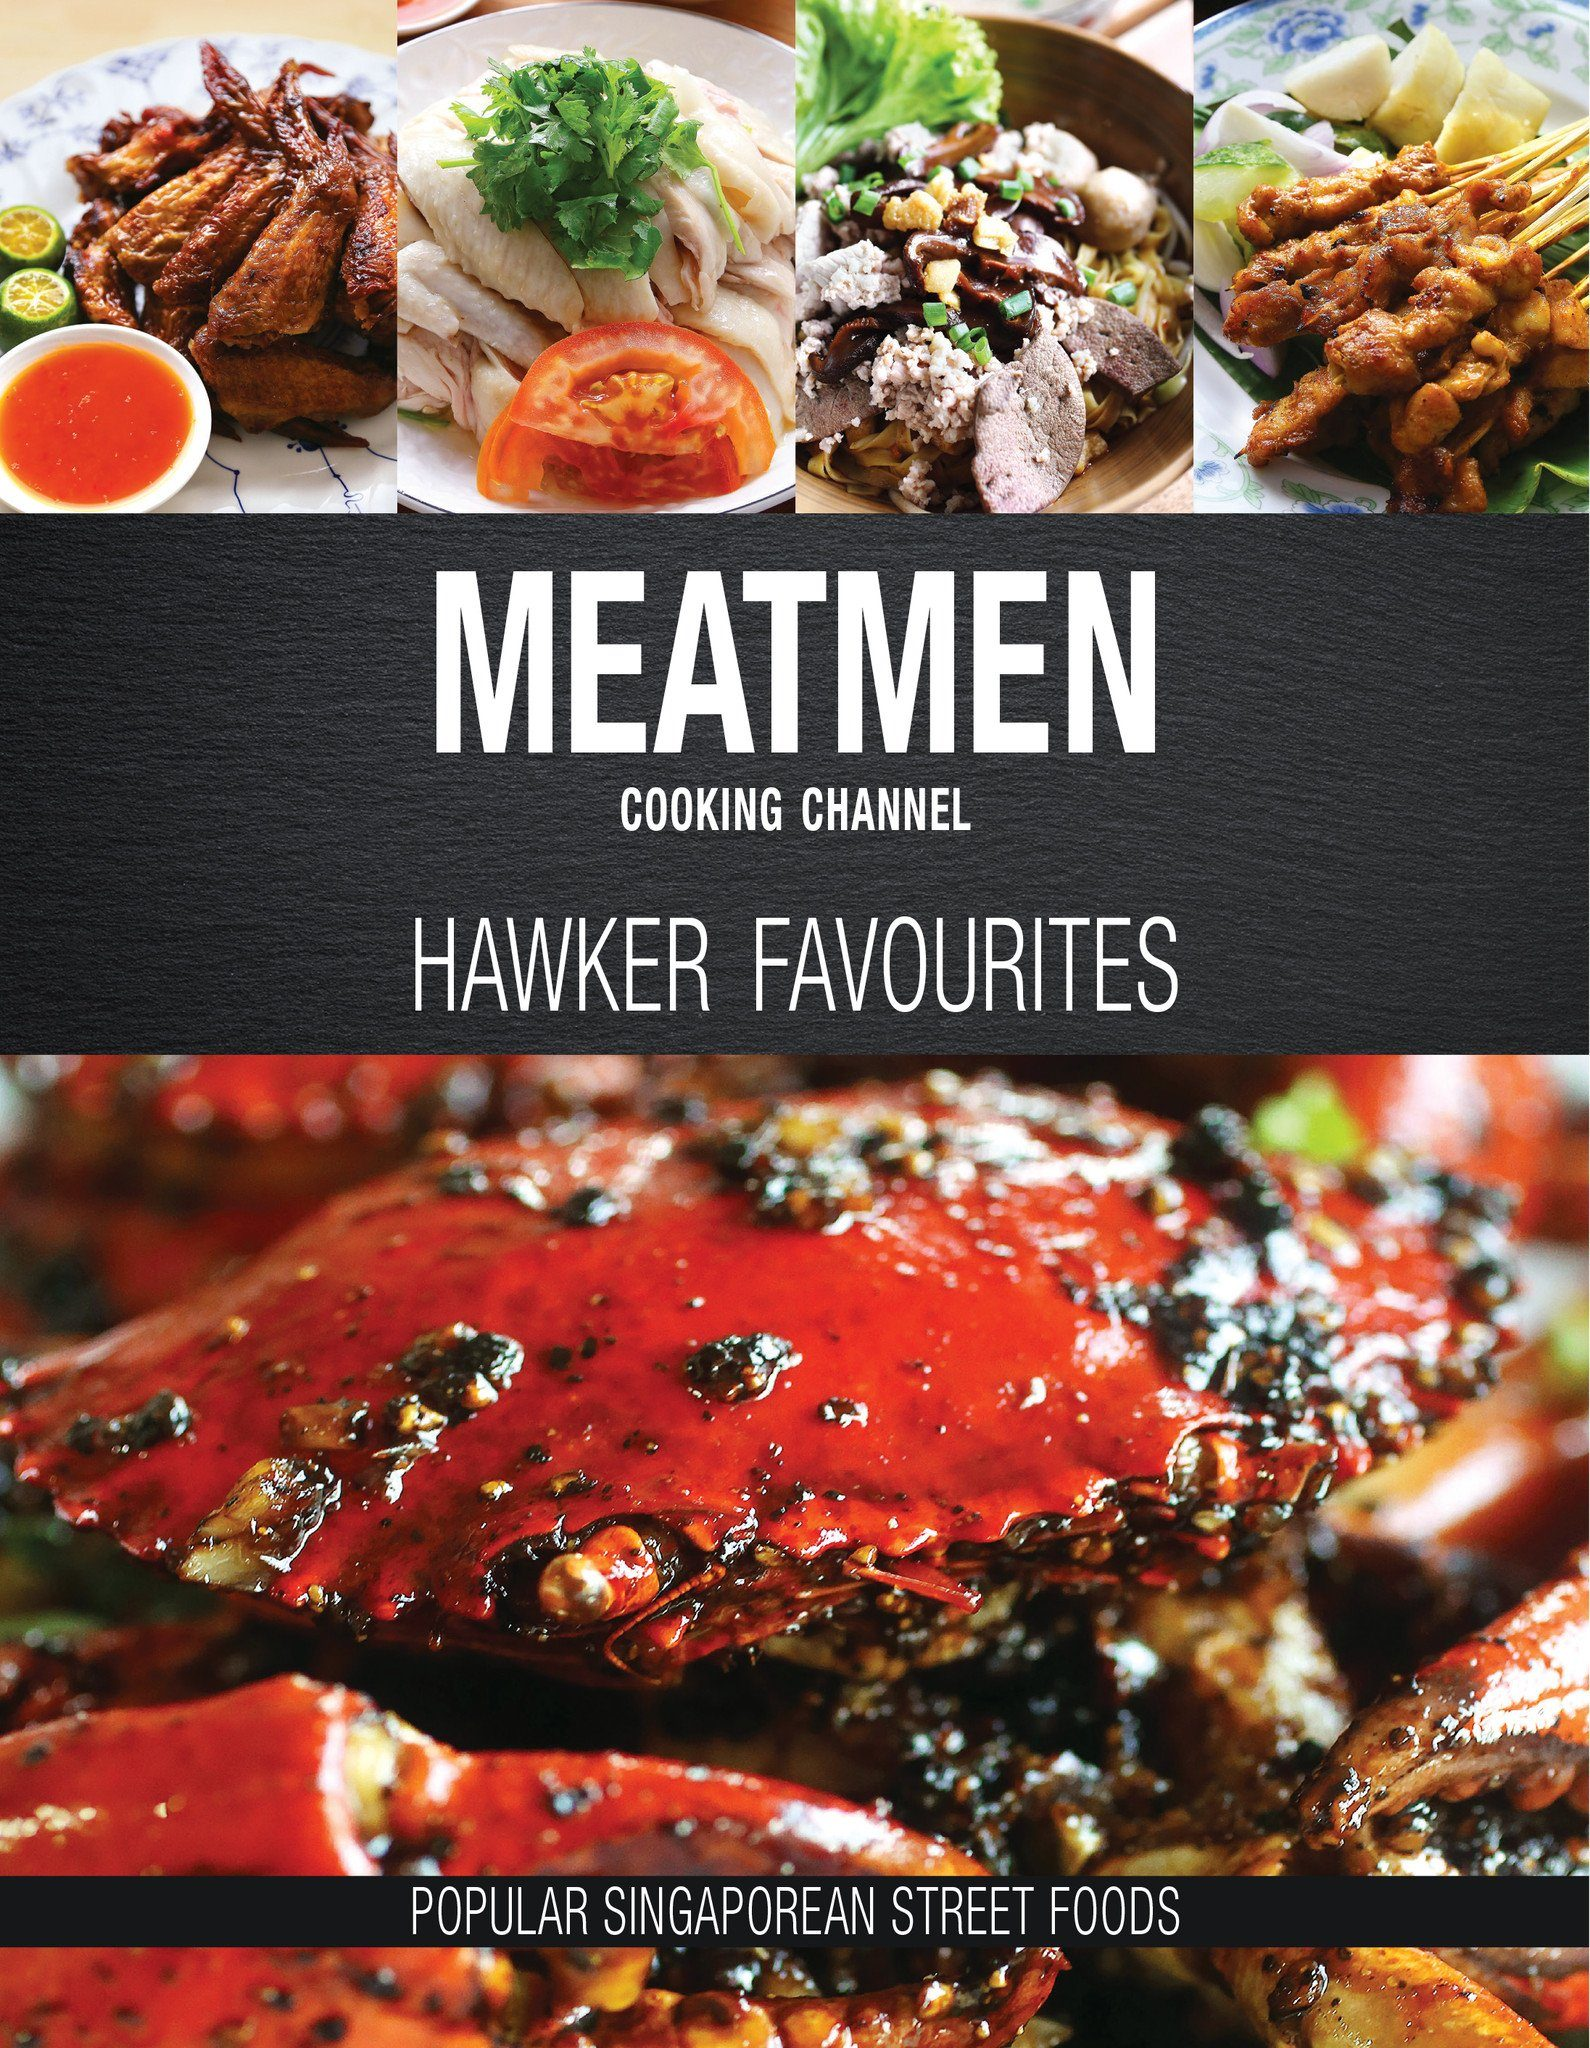 MeatMen Cooking Channel: Hawker Favourites Cookbooks Marshall Cavendish